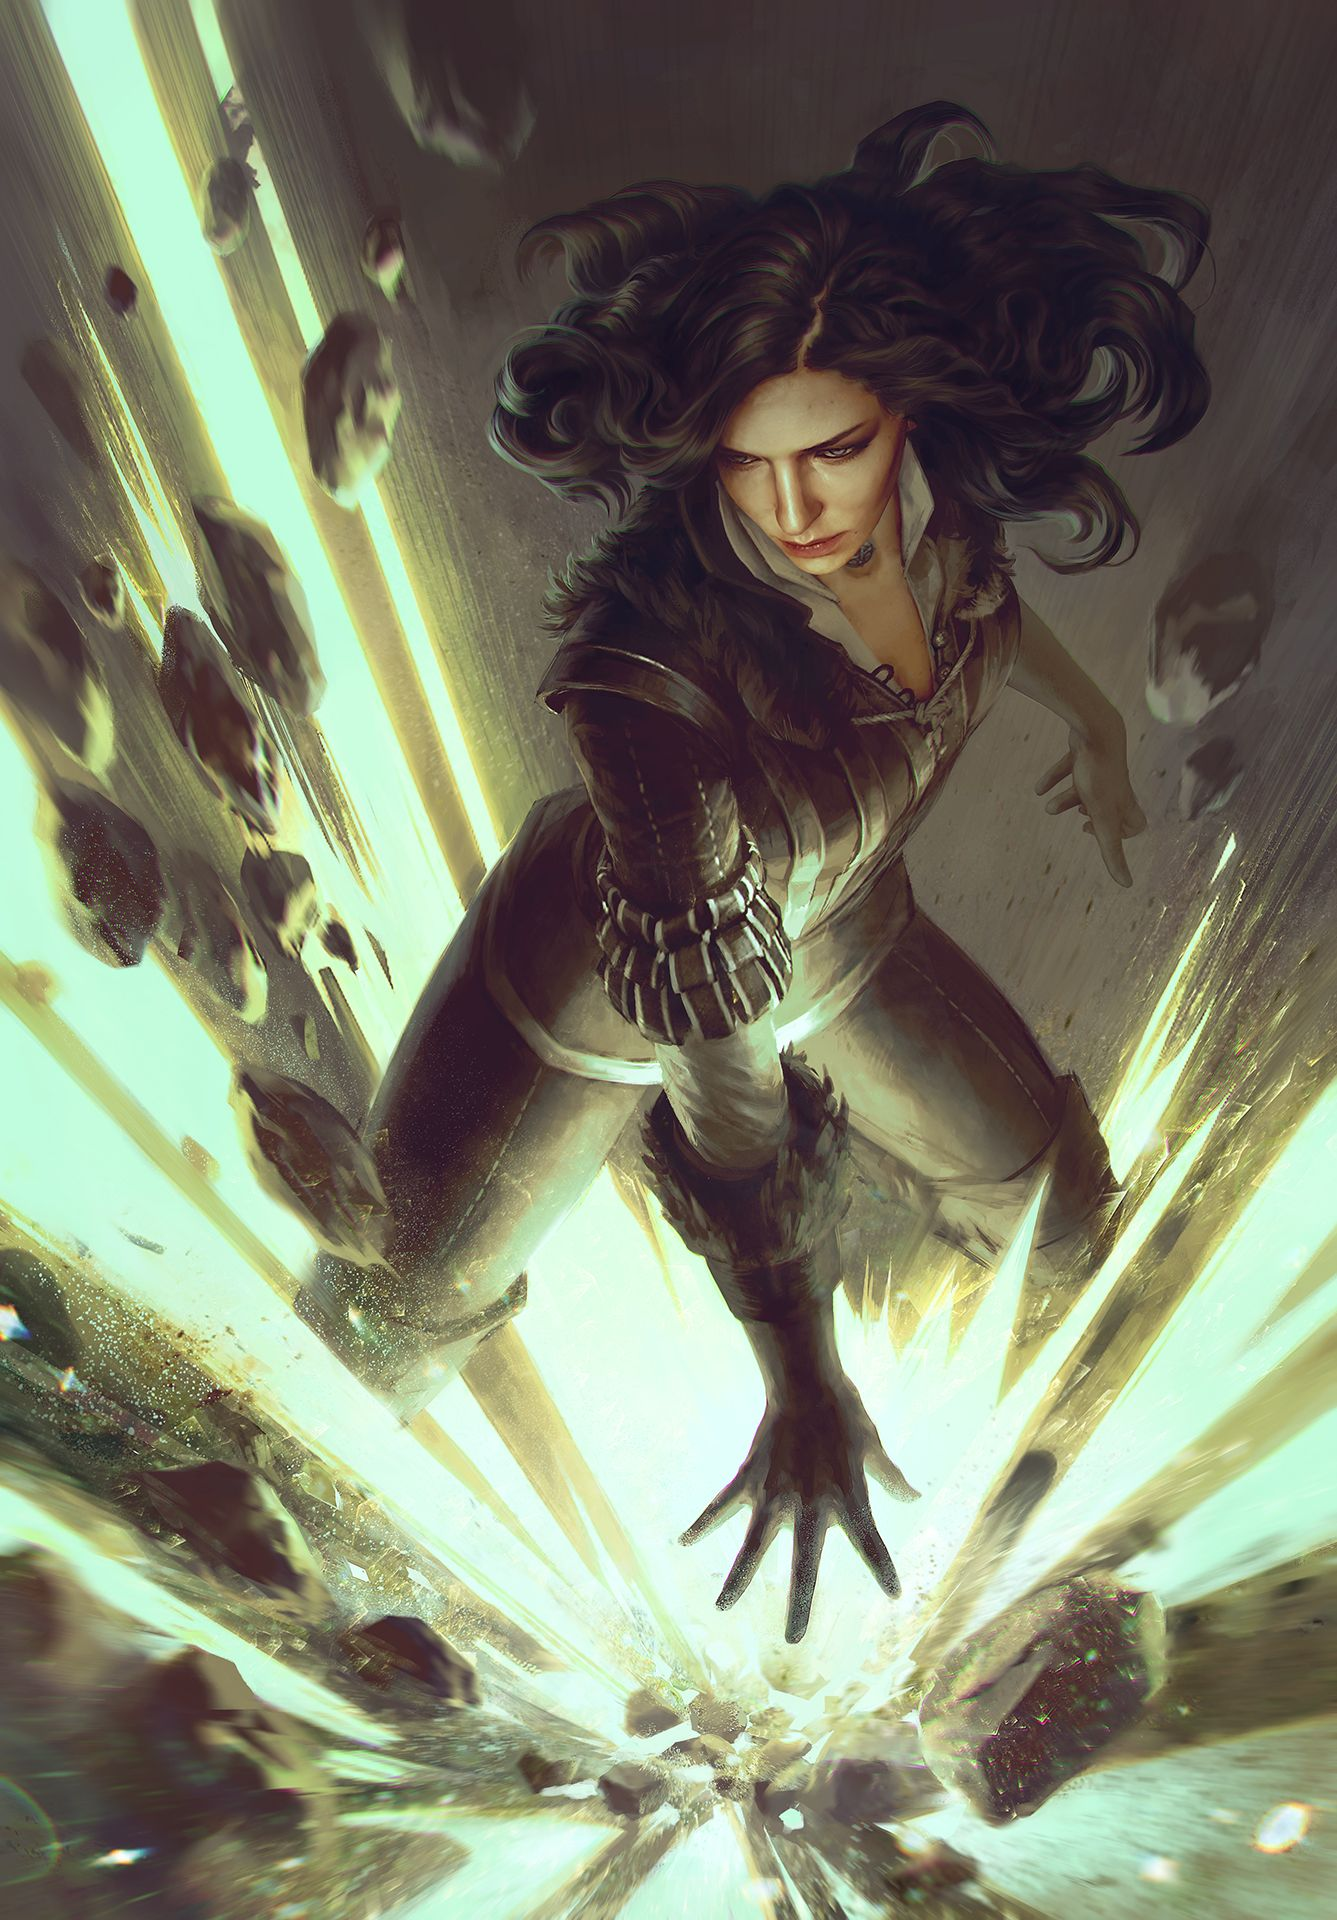 Artwork Yennefer: The Summoner – Witcher 3 | The Witcher 3